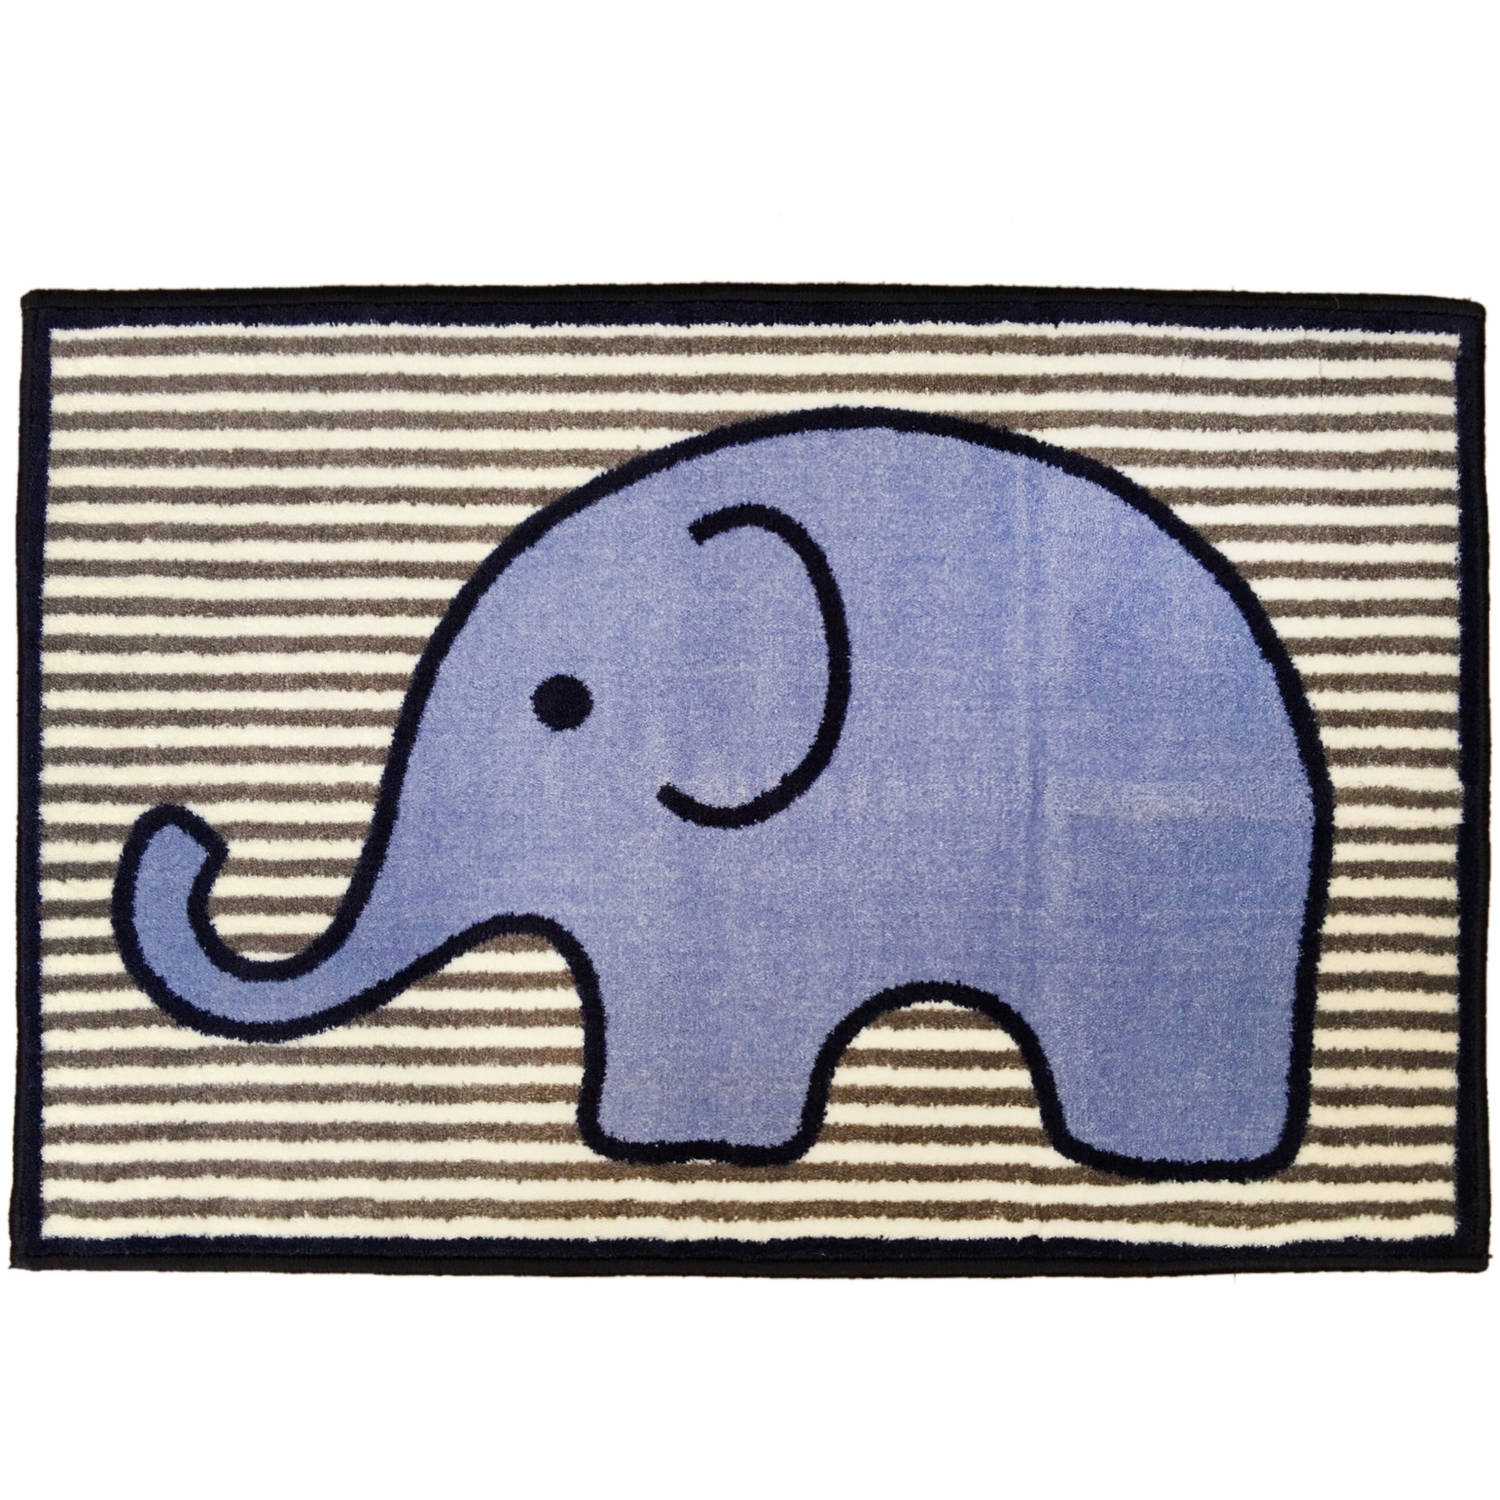 Bacati - Elephants Rug 24 x 36 inches Nylon with nonskid backing, Blue/Gray